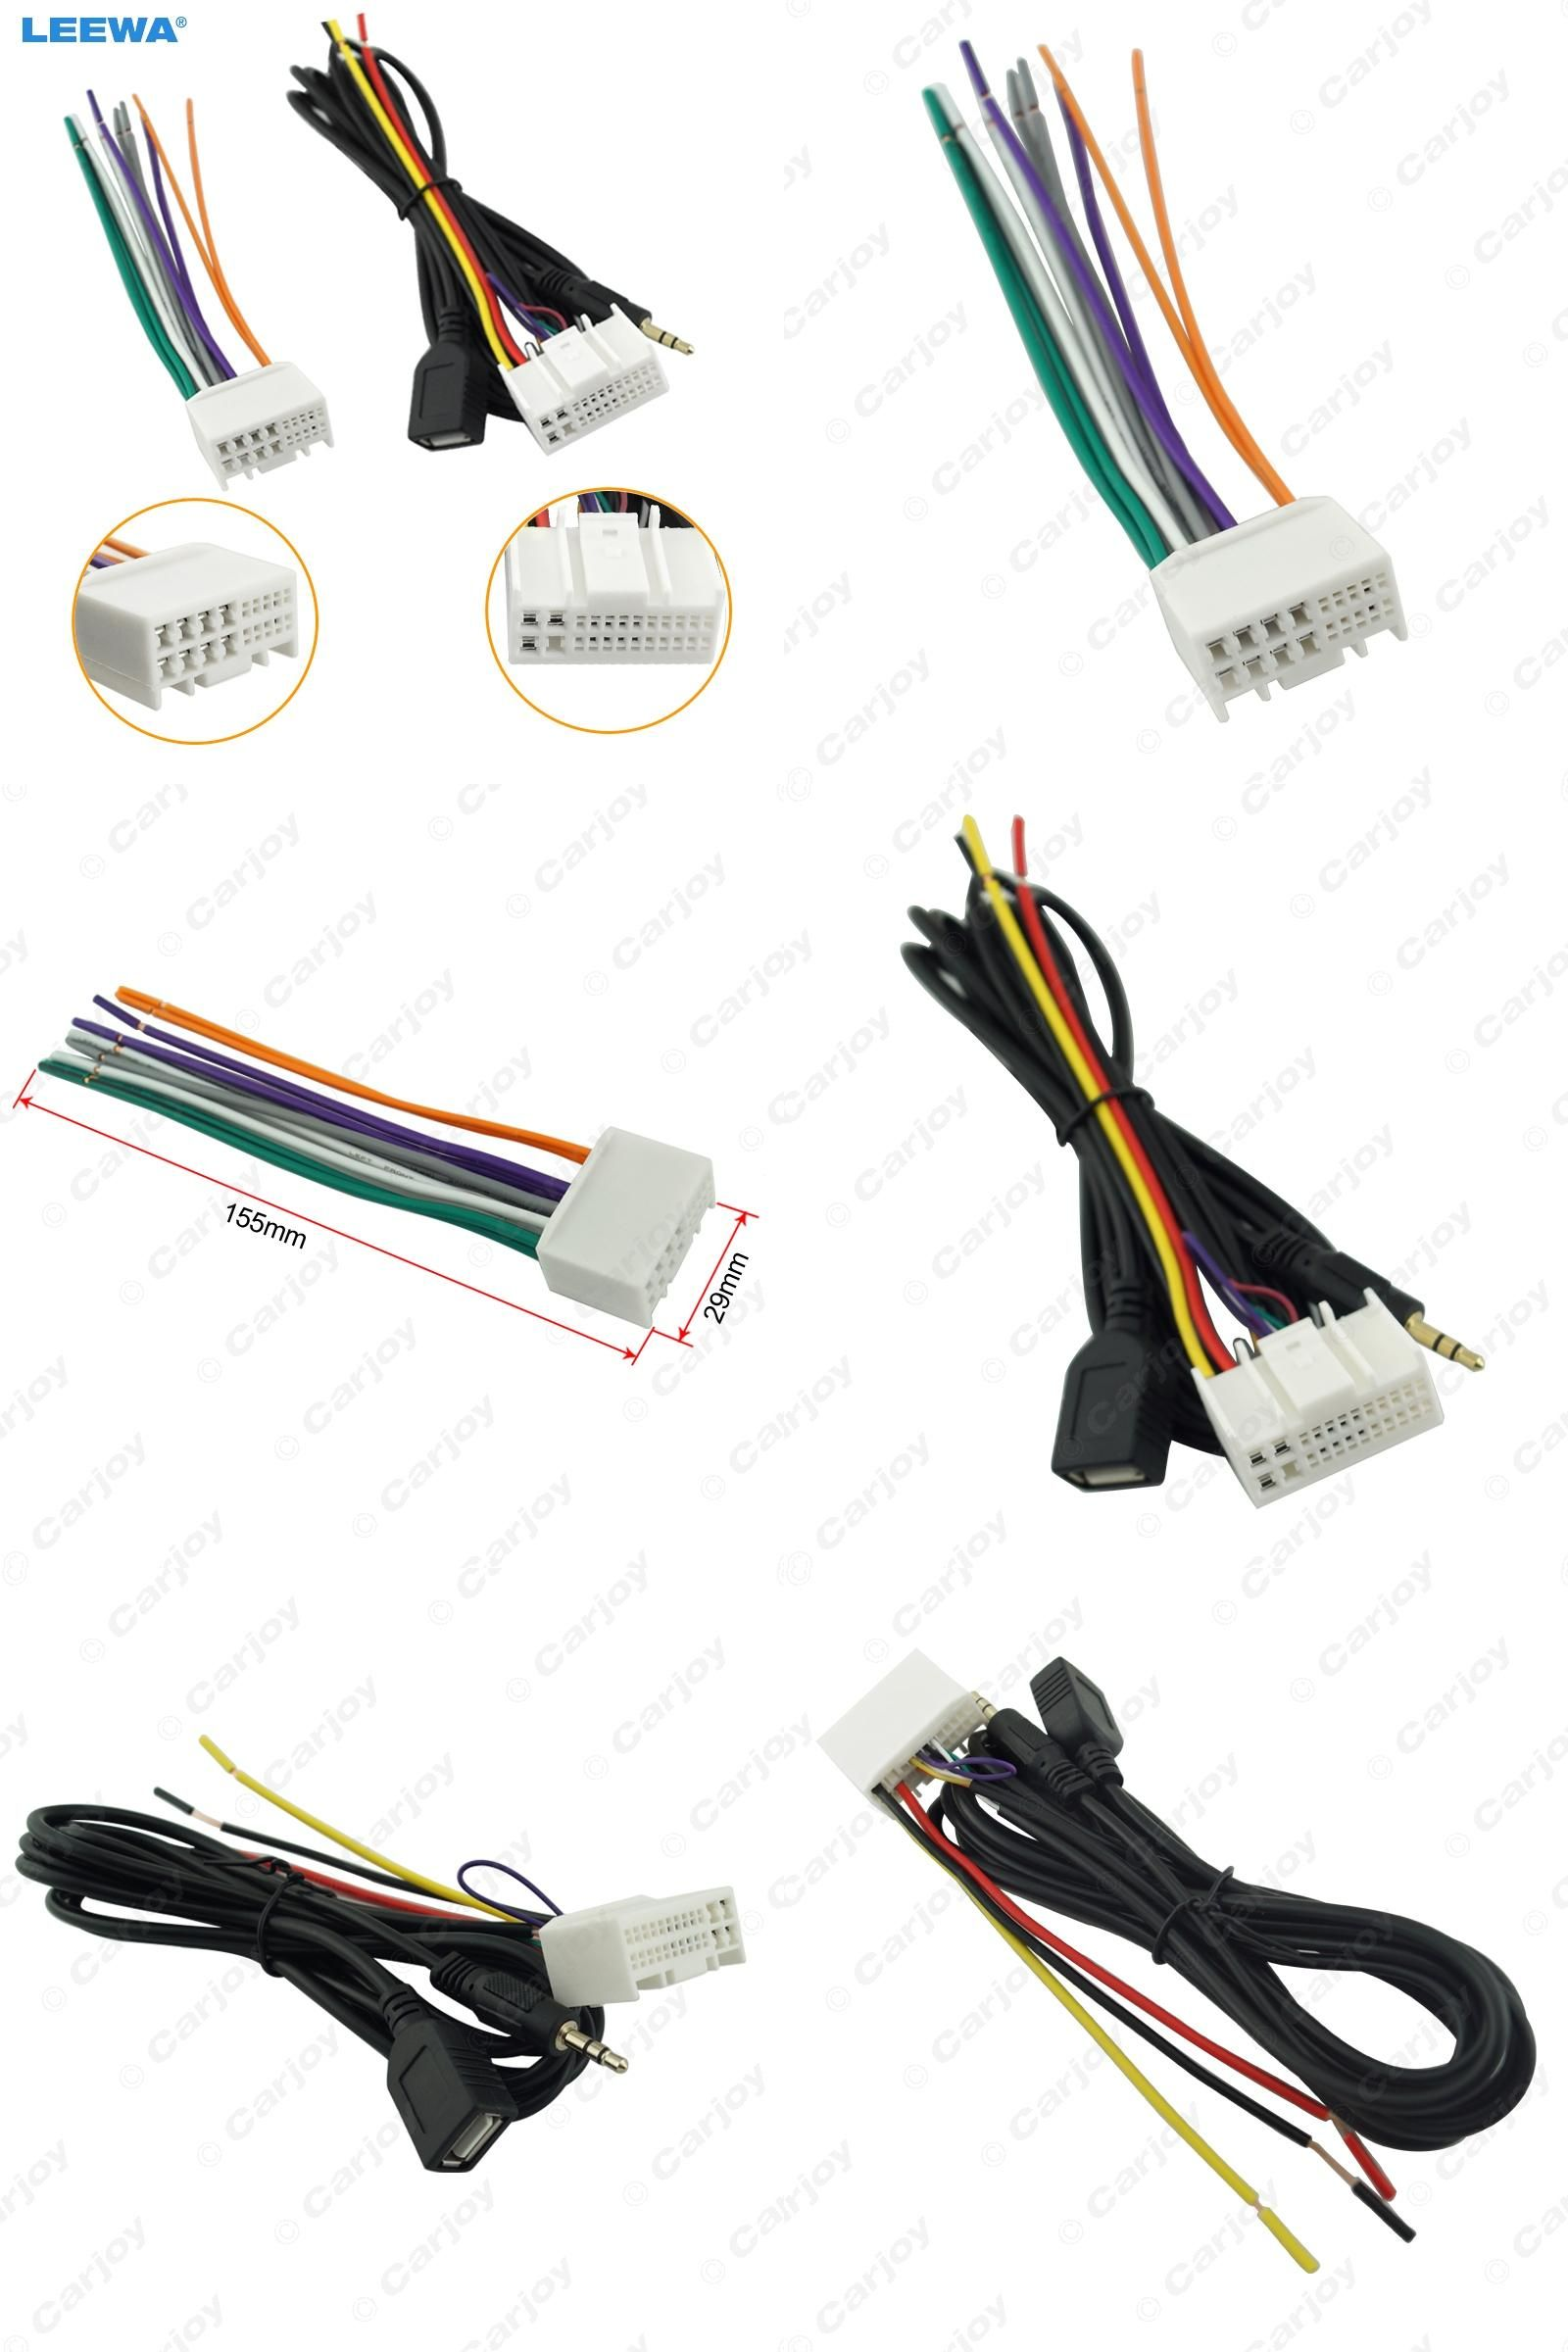 65bba15fb3a8d9bc4f1b698bf8827601 visit to buy] car audio cd stereo wiring harness adapter with usb where to buy a trailer wiring harness at mifinder.co